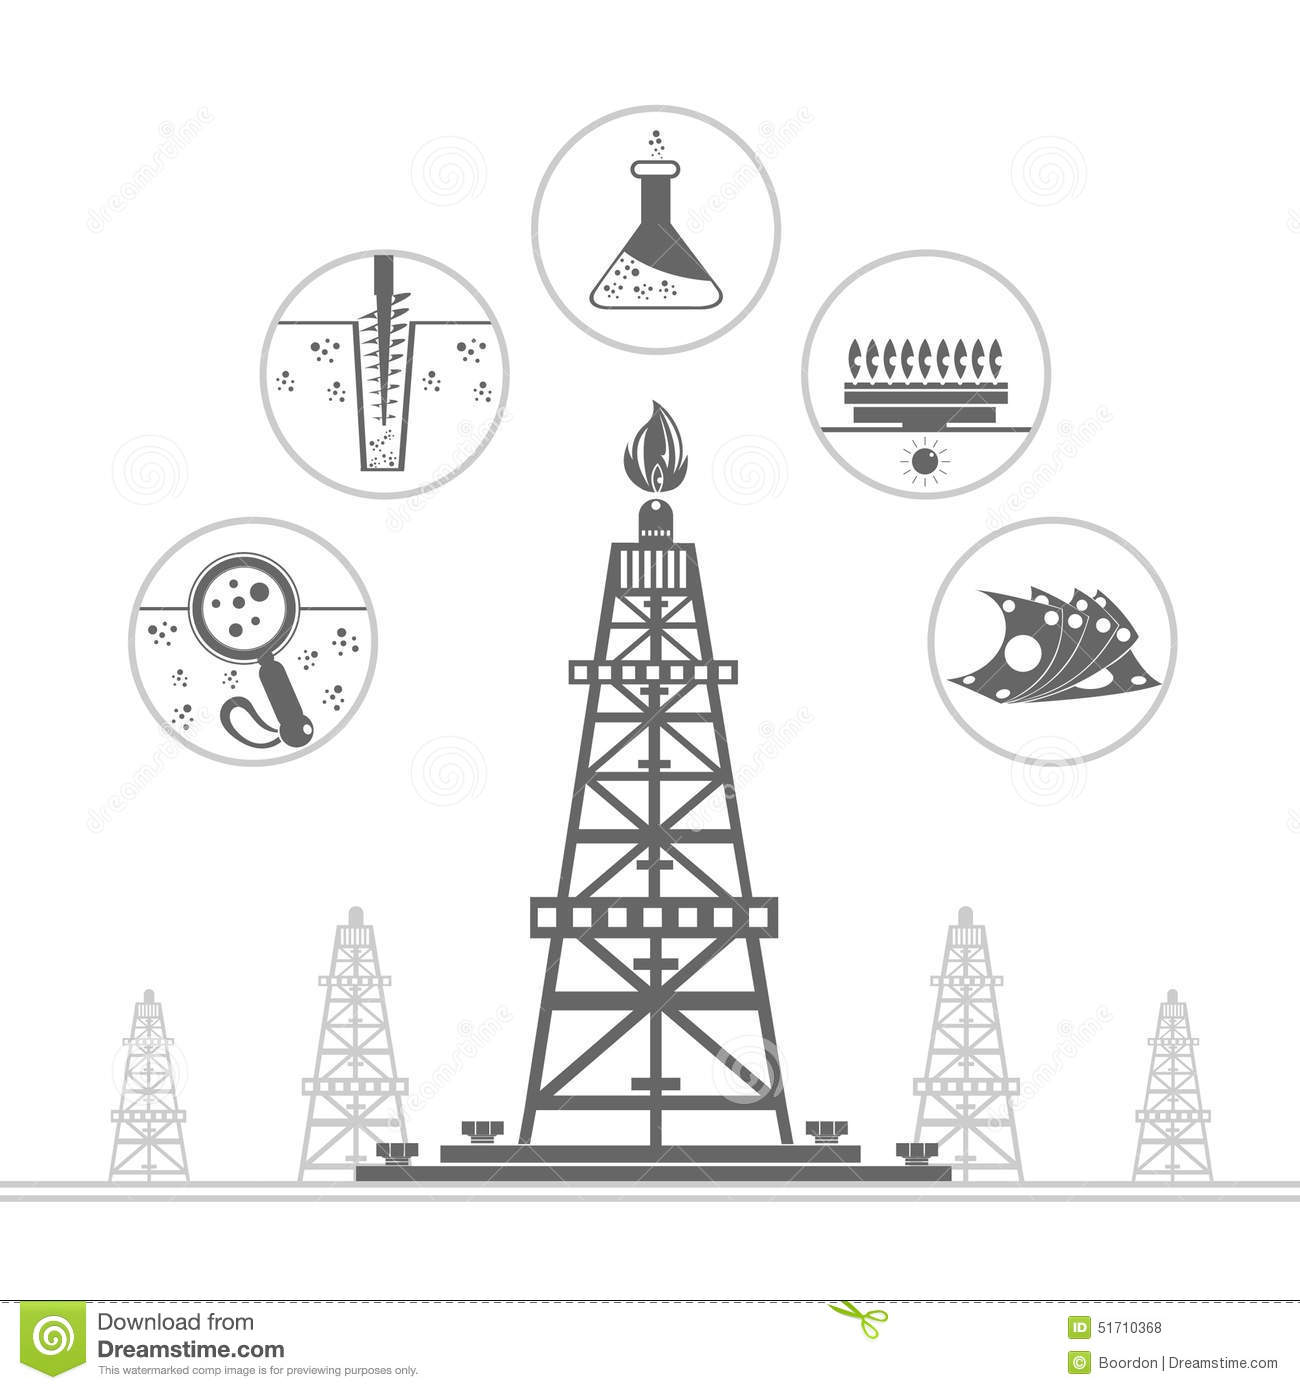 Gas Rig Or Oil Derrick With Icons Of Process Production